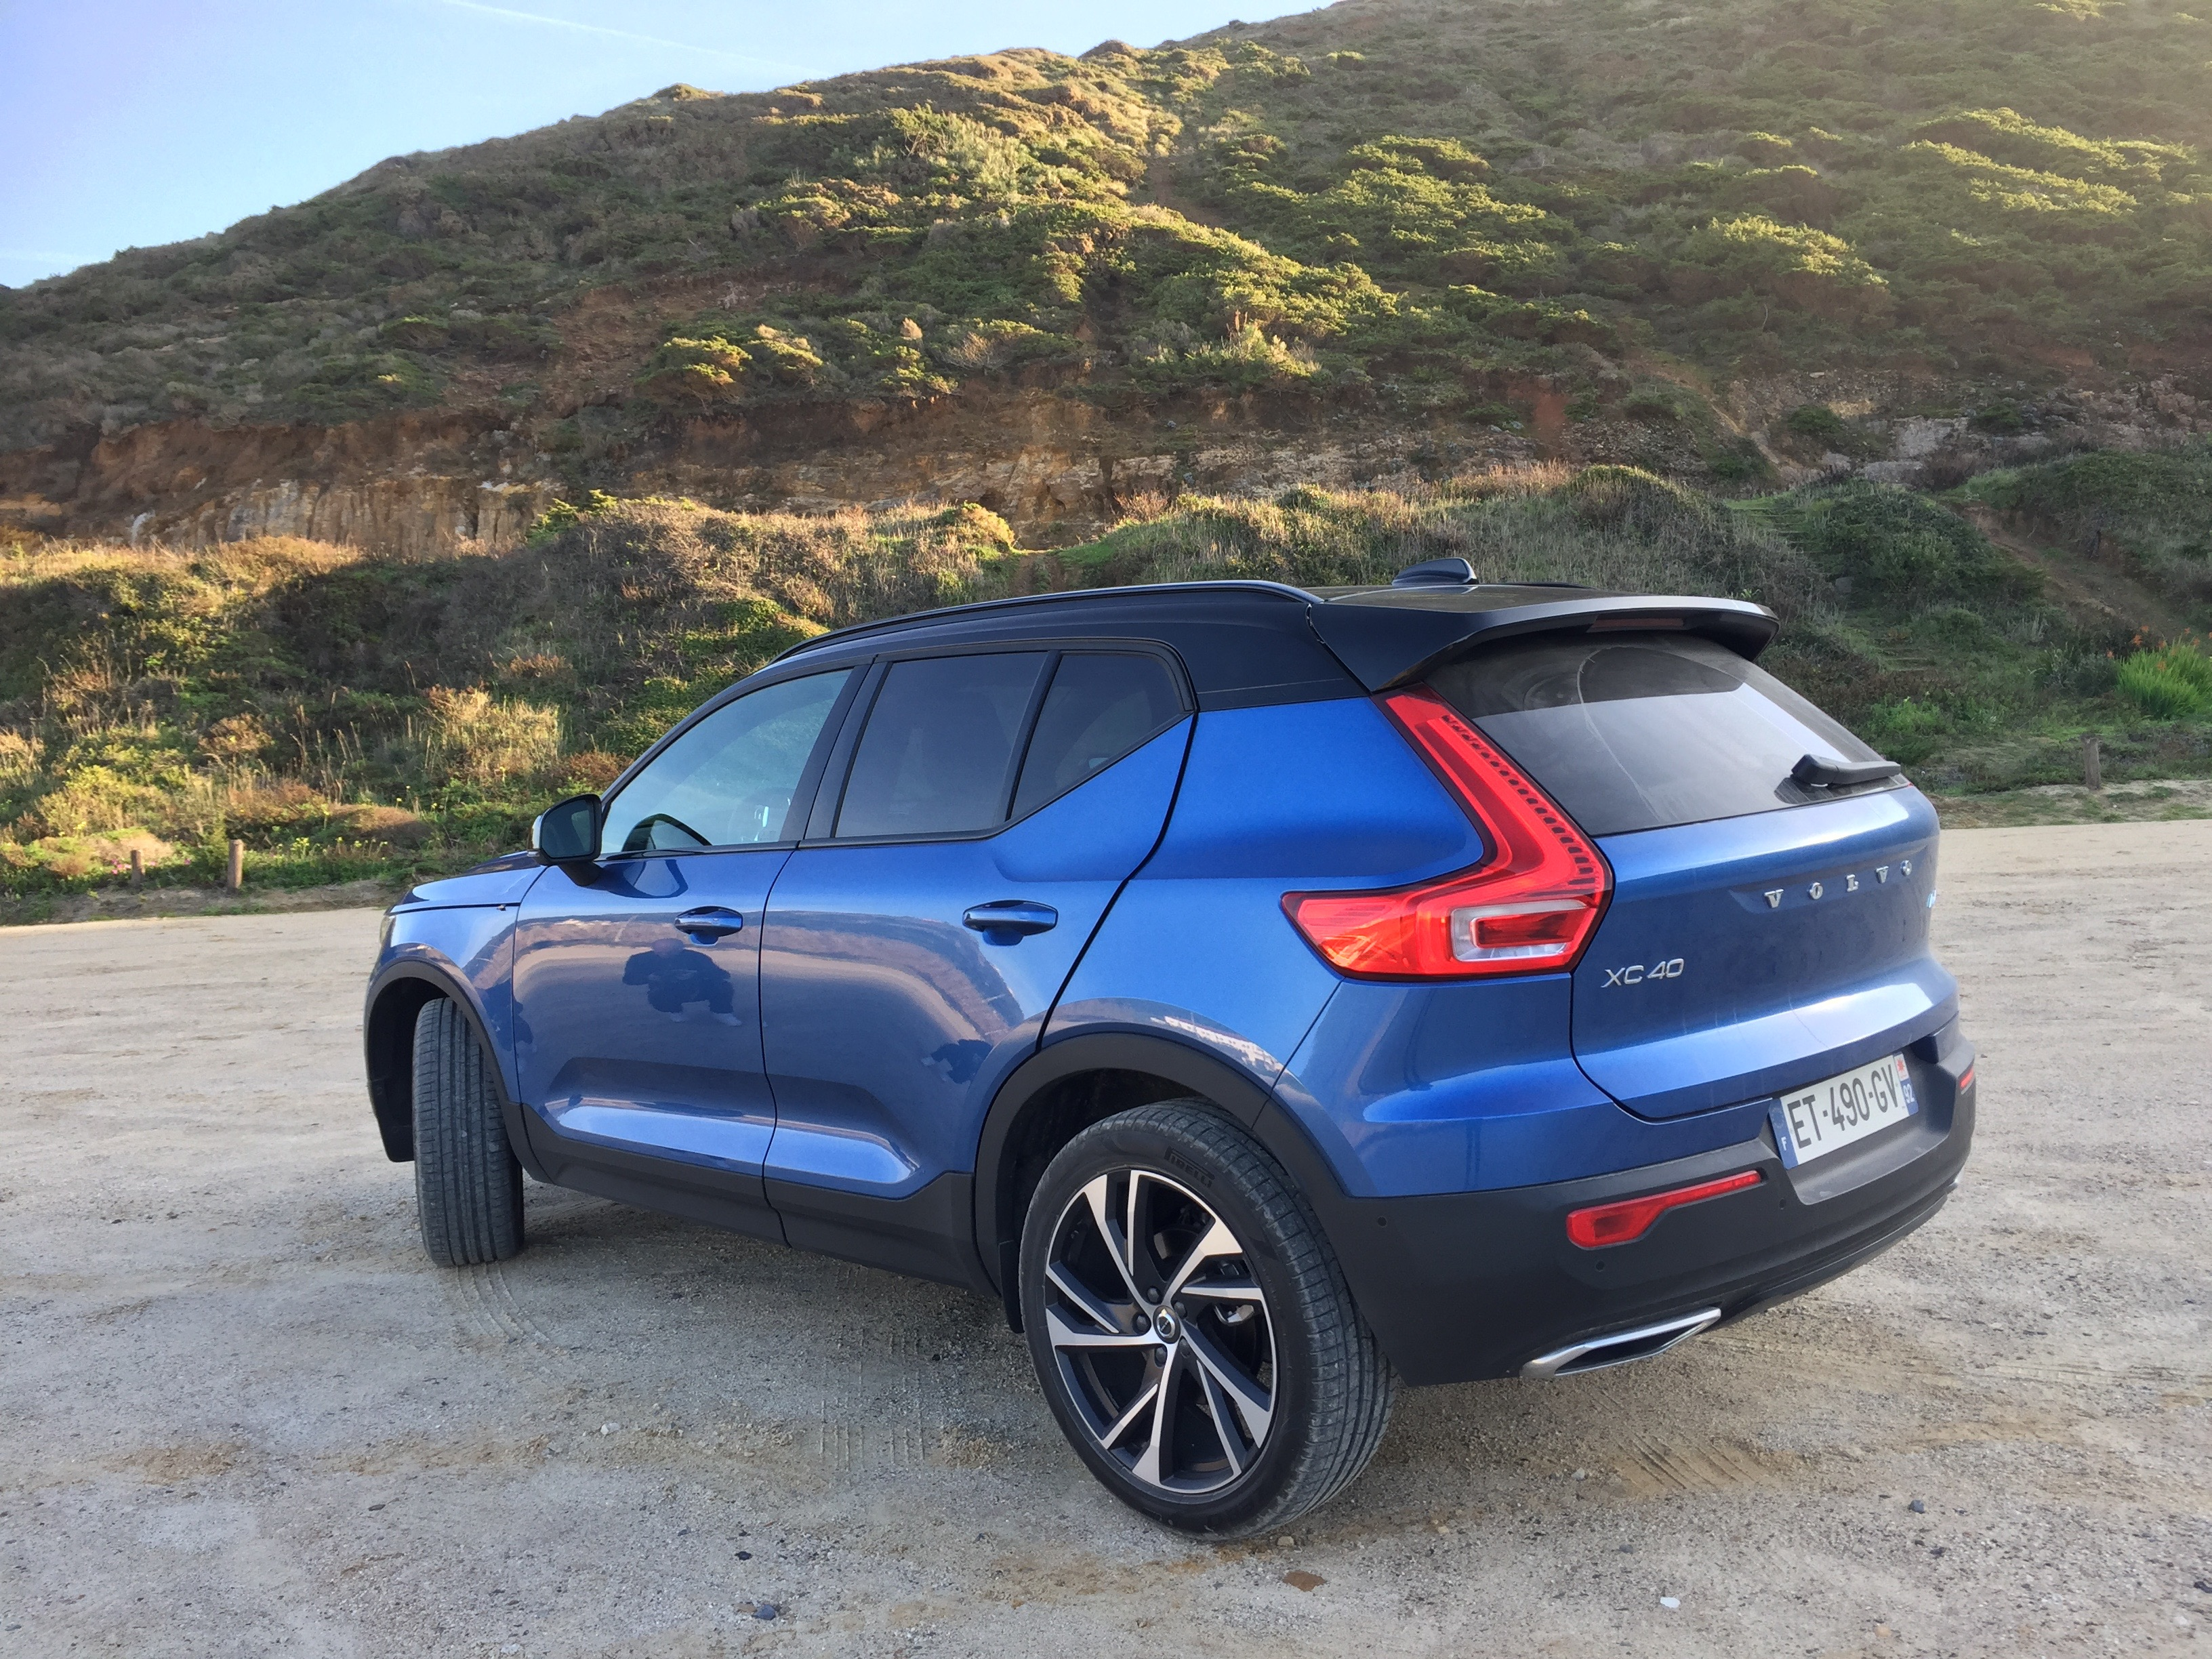 volvo xc40 essai du nouveau suv compact premium de la marque. Black Bedroom Furniture Sets. Home Design Ideas